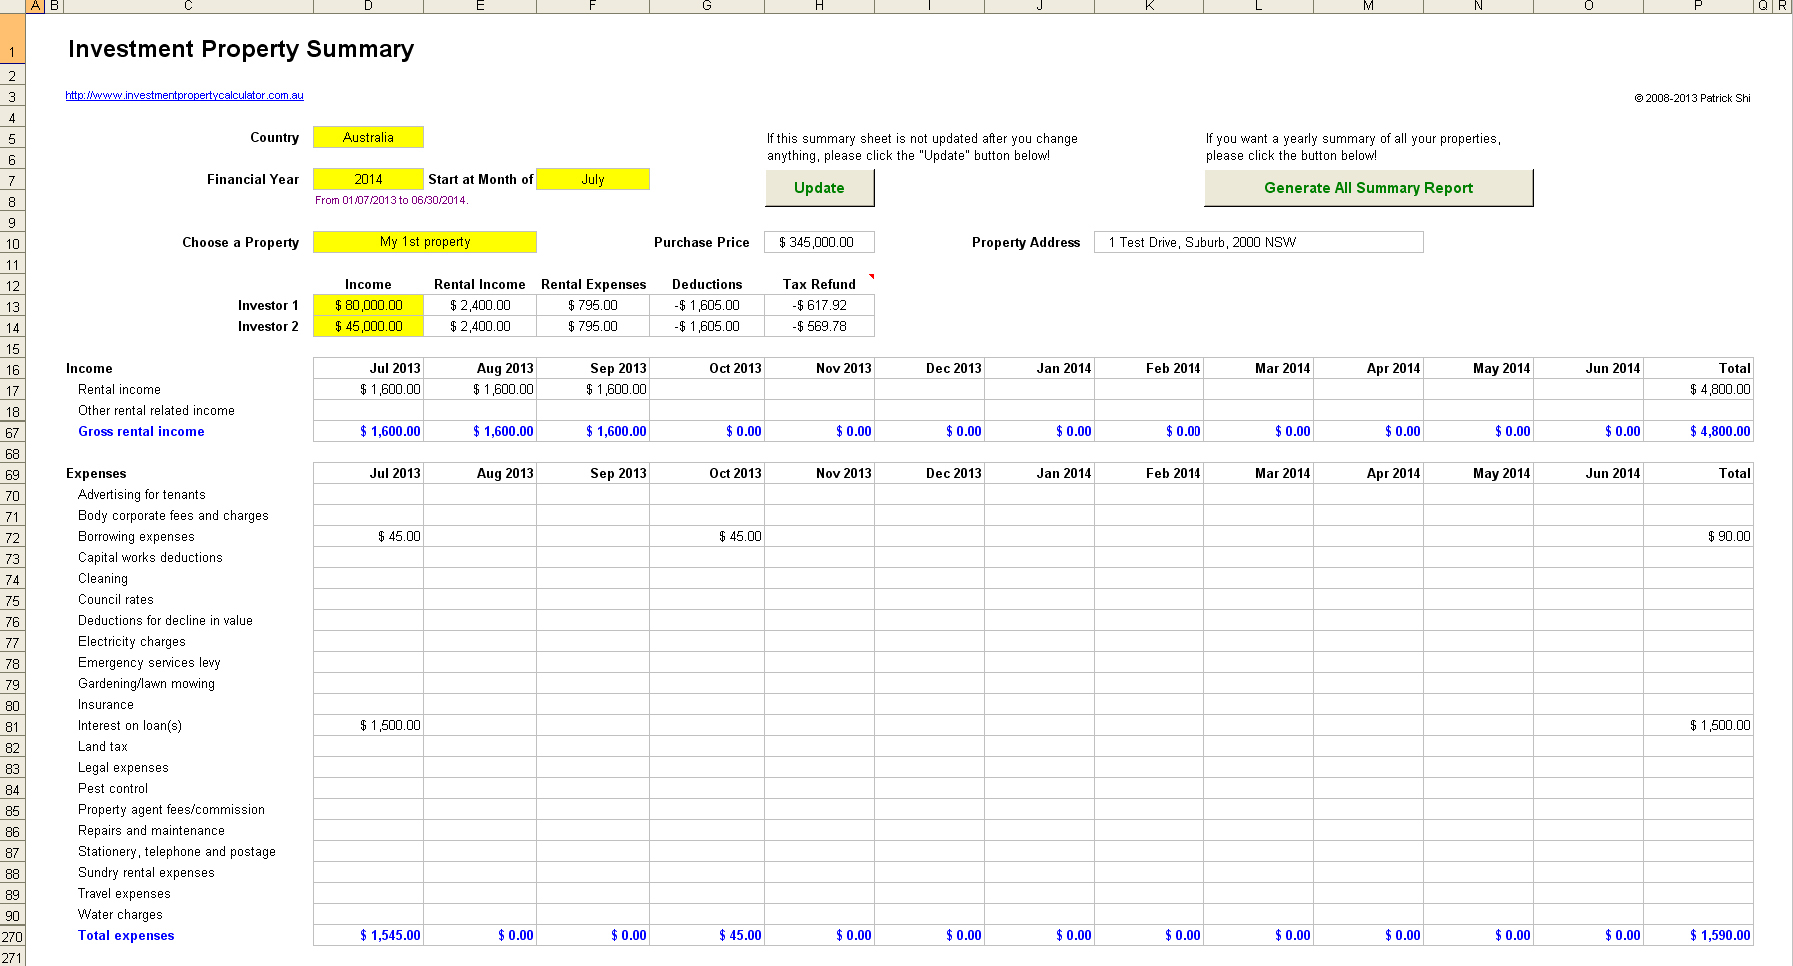 Investment Property Record Keeping Spreadsheet Regarding Rental Investment Property Record Keeping Spreadsheet